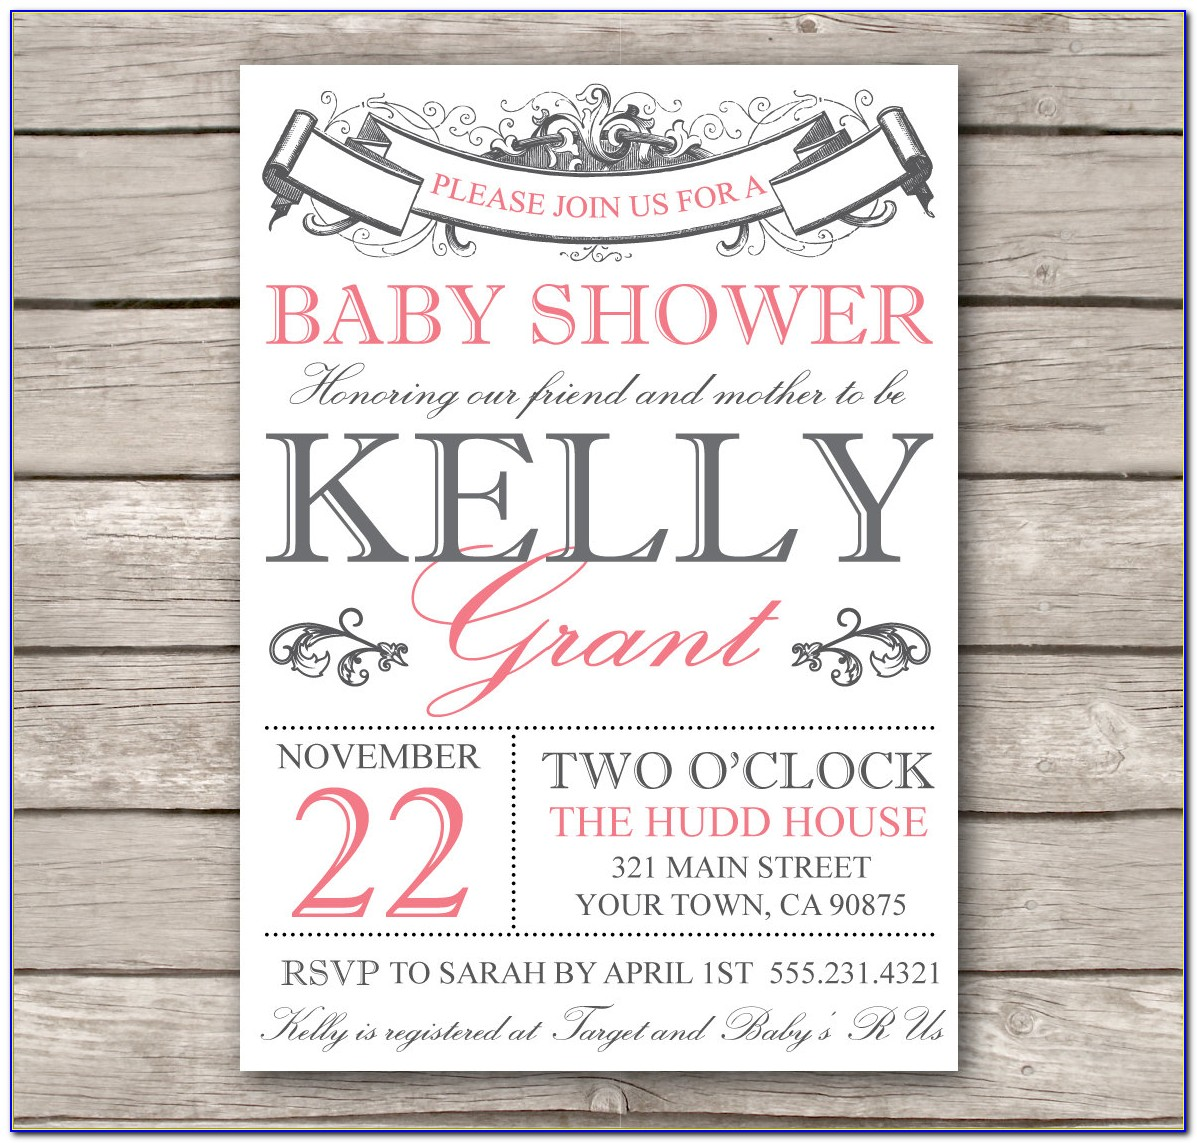 Create Electronic Baby Shower Invitations